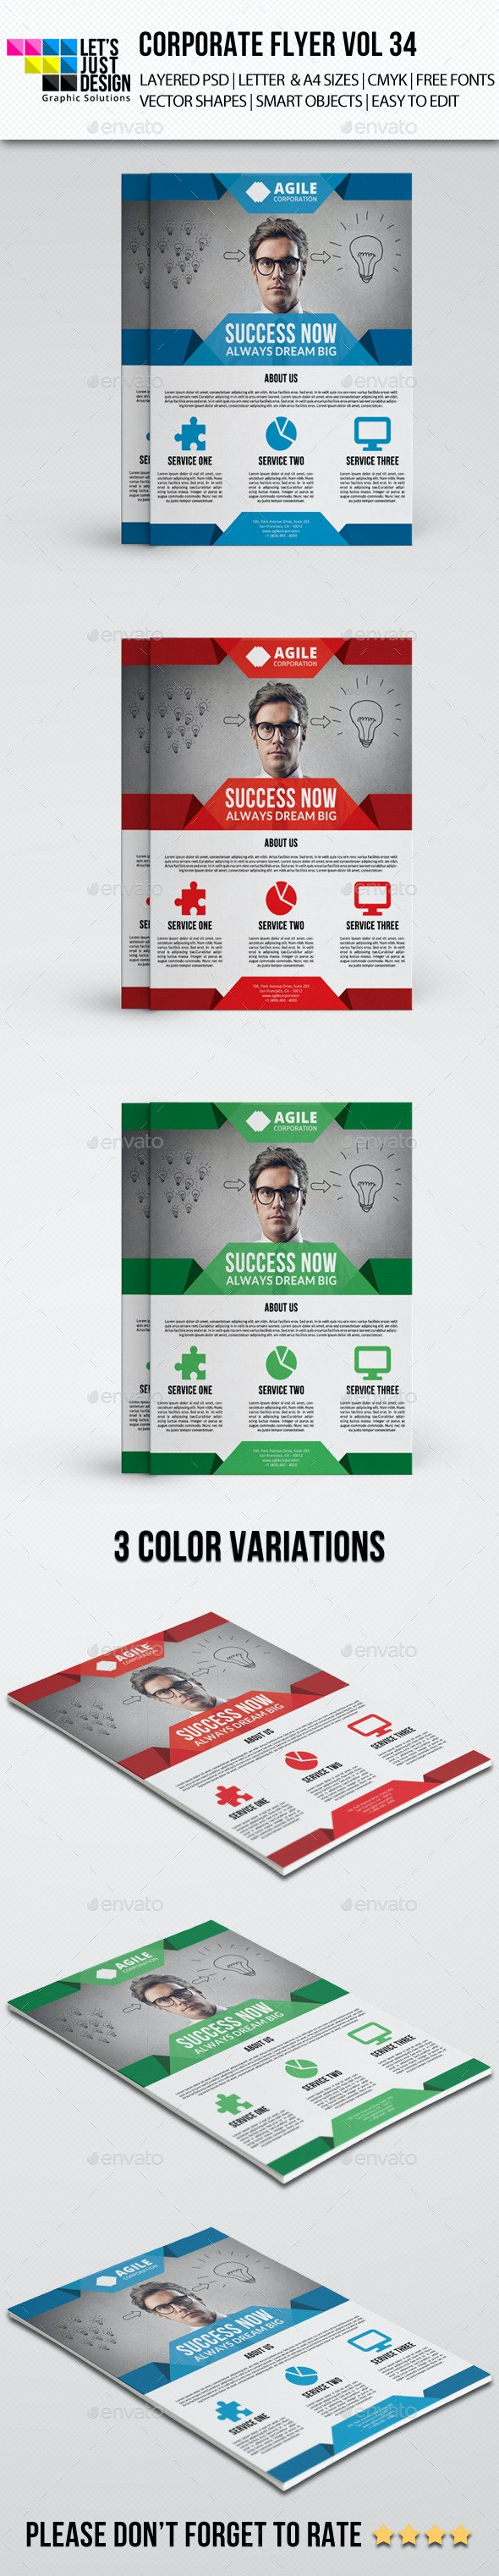 A4 Corporate Flyer Template Vol 34 - Corporate Flyers